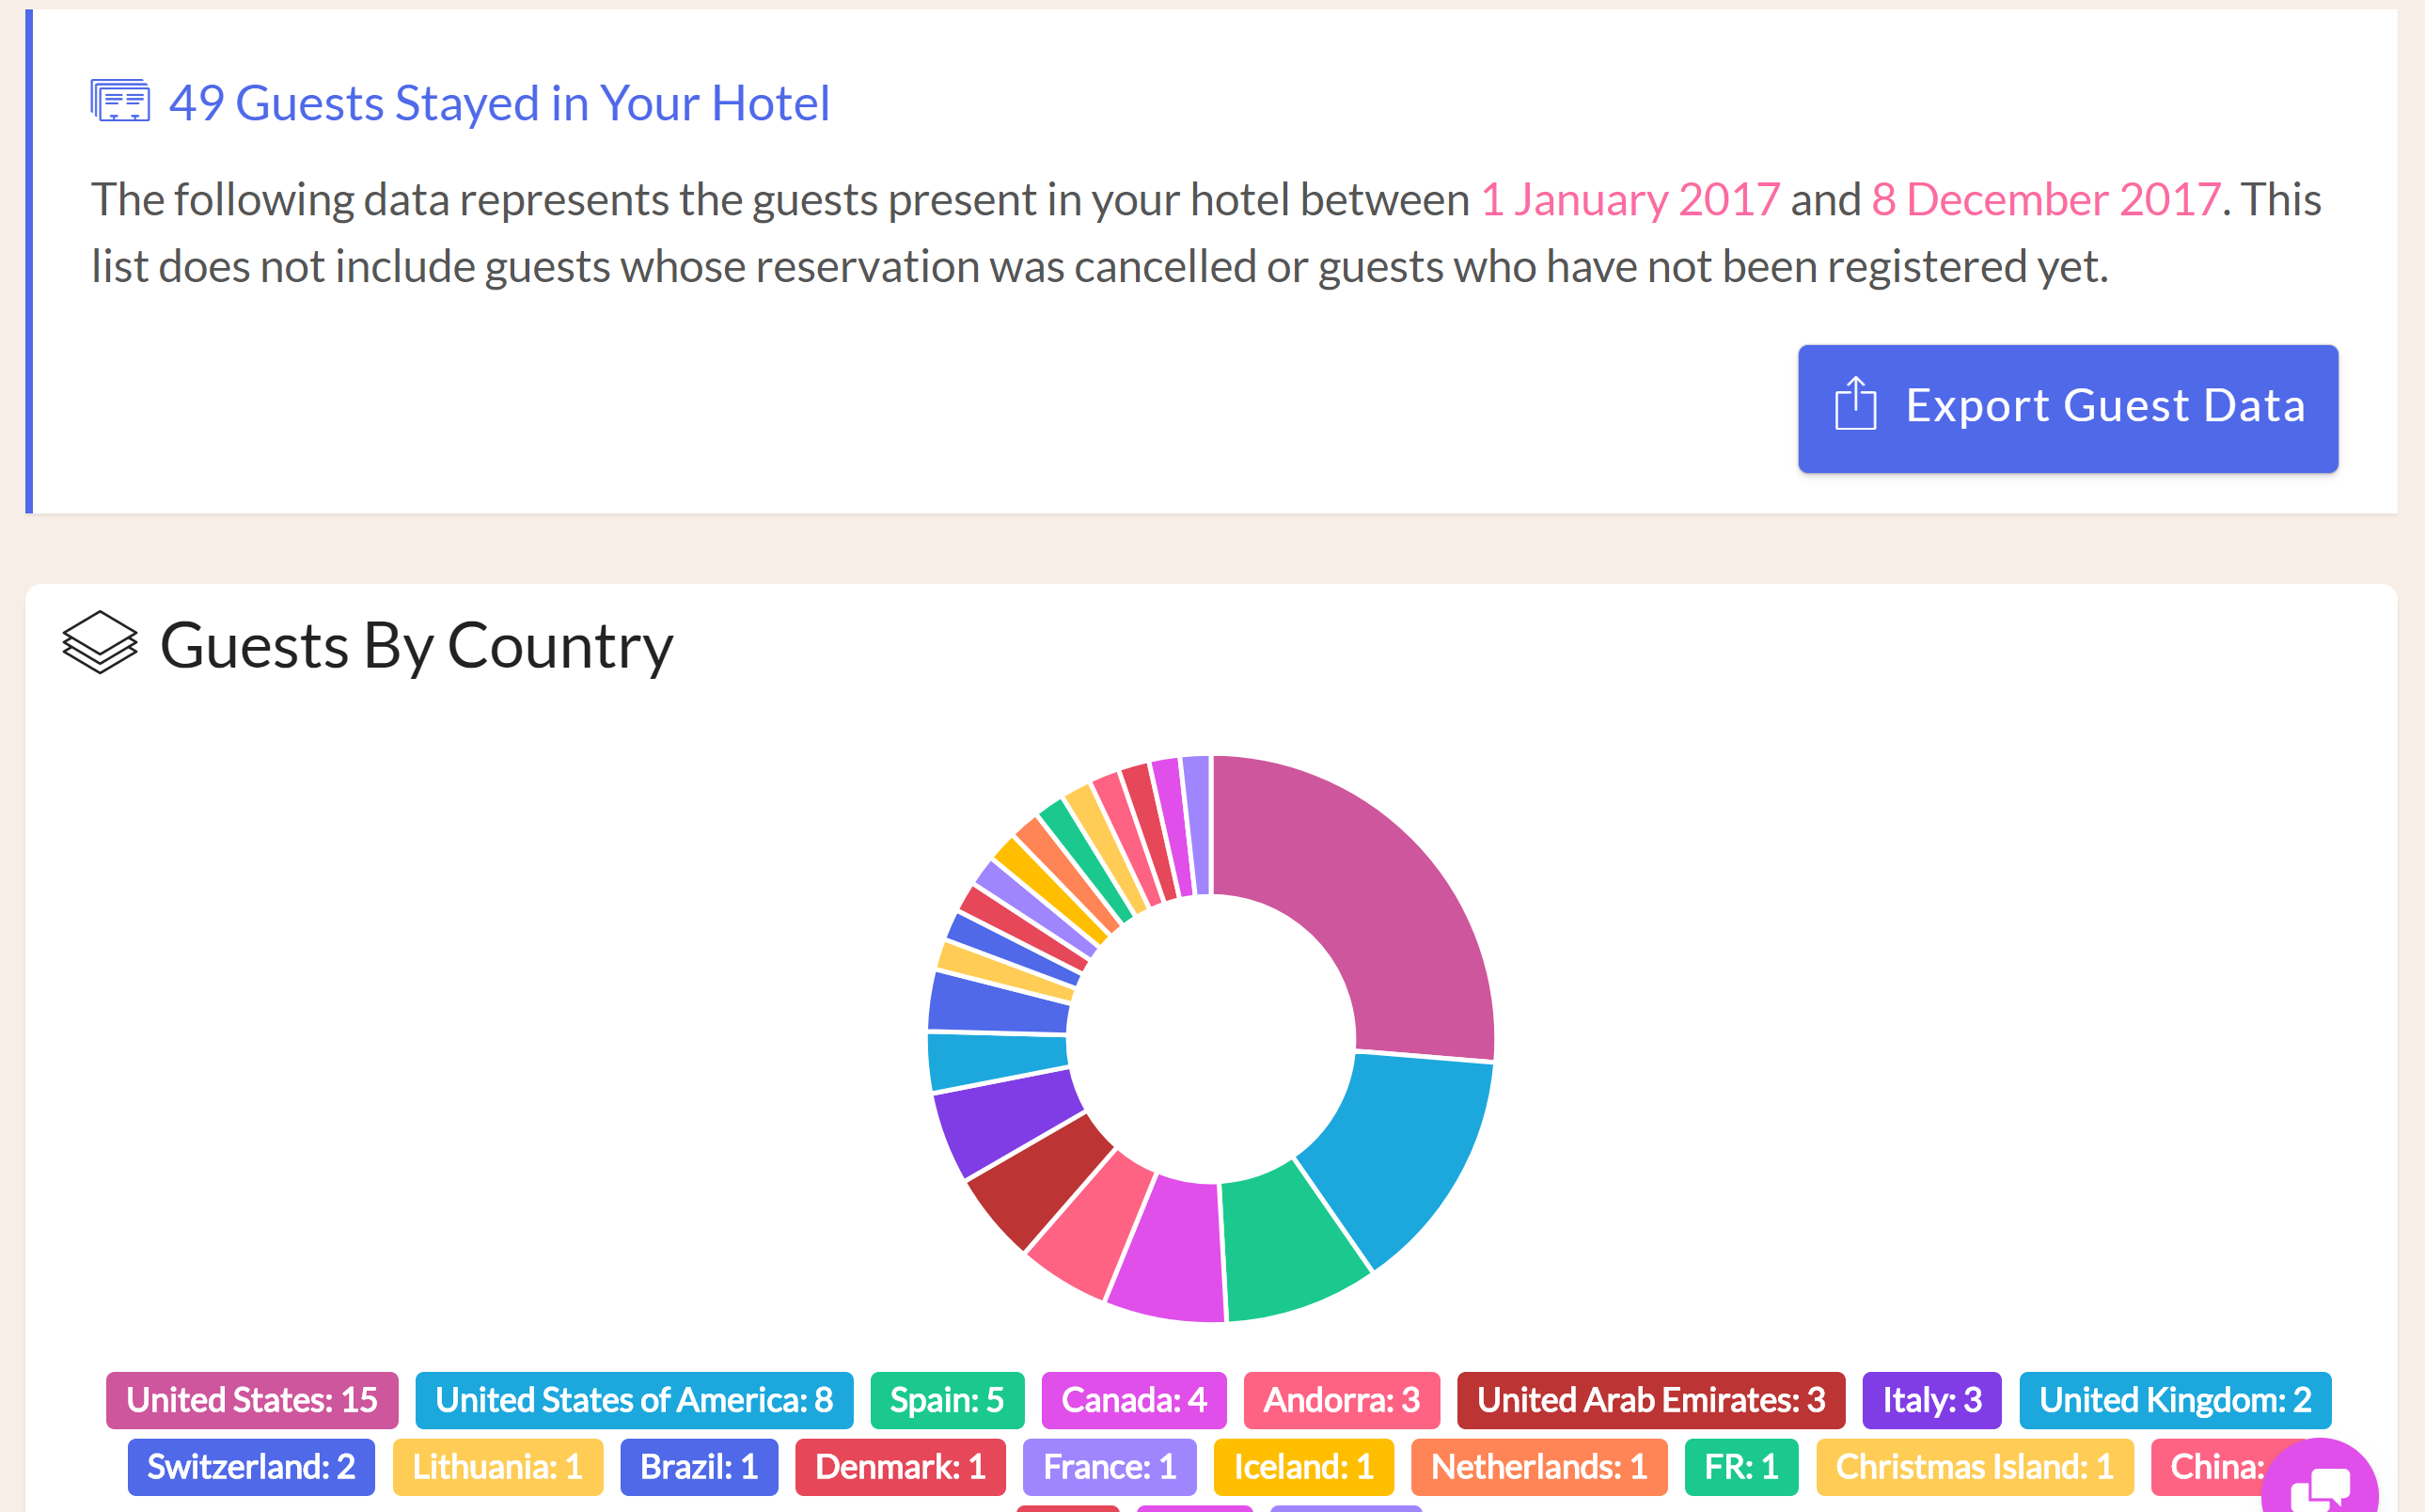 Hotel Charts & Graphs In our latest update to the Front Desk manager, we have added charts and graphs throughout the application to allow hoteliers to get an idea of booking sources and revenue distribution at a glance. There is no need to export your data to generate visual analysis of your hotel's business.